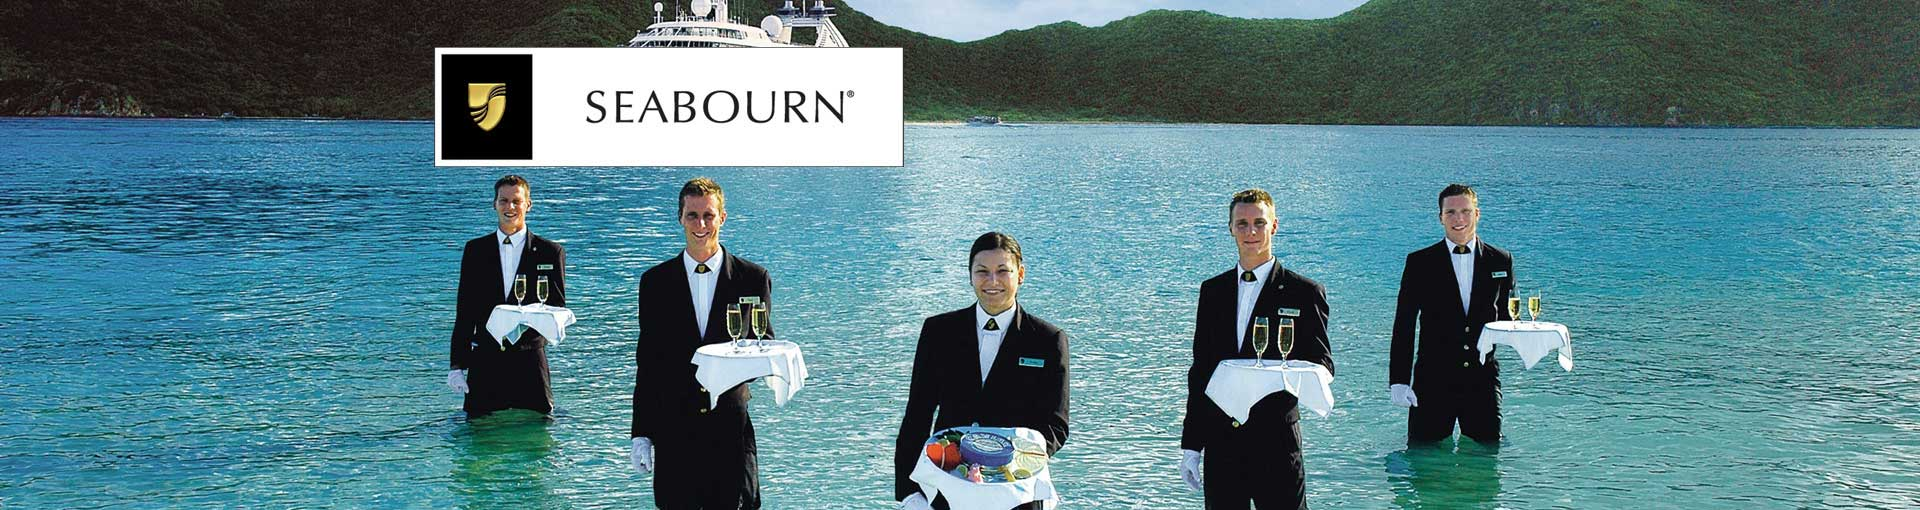 seabourn-cruises-overview-banner_orig.jpg